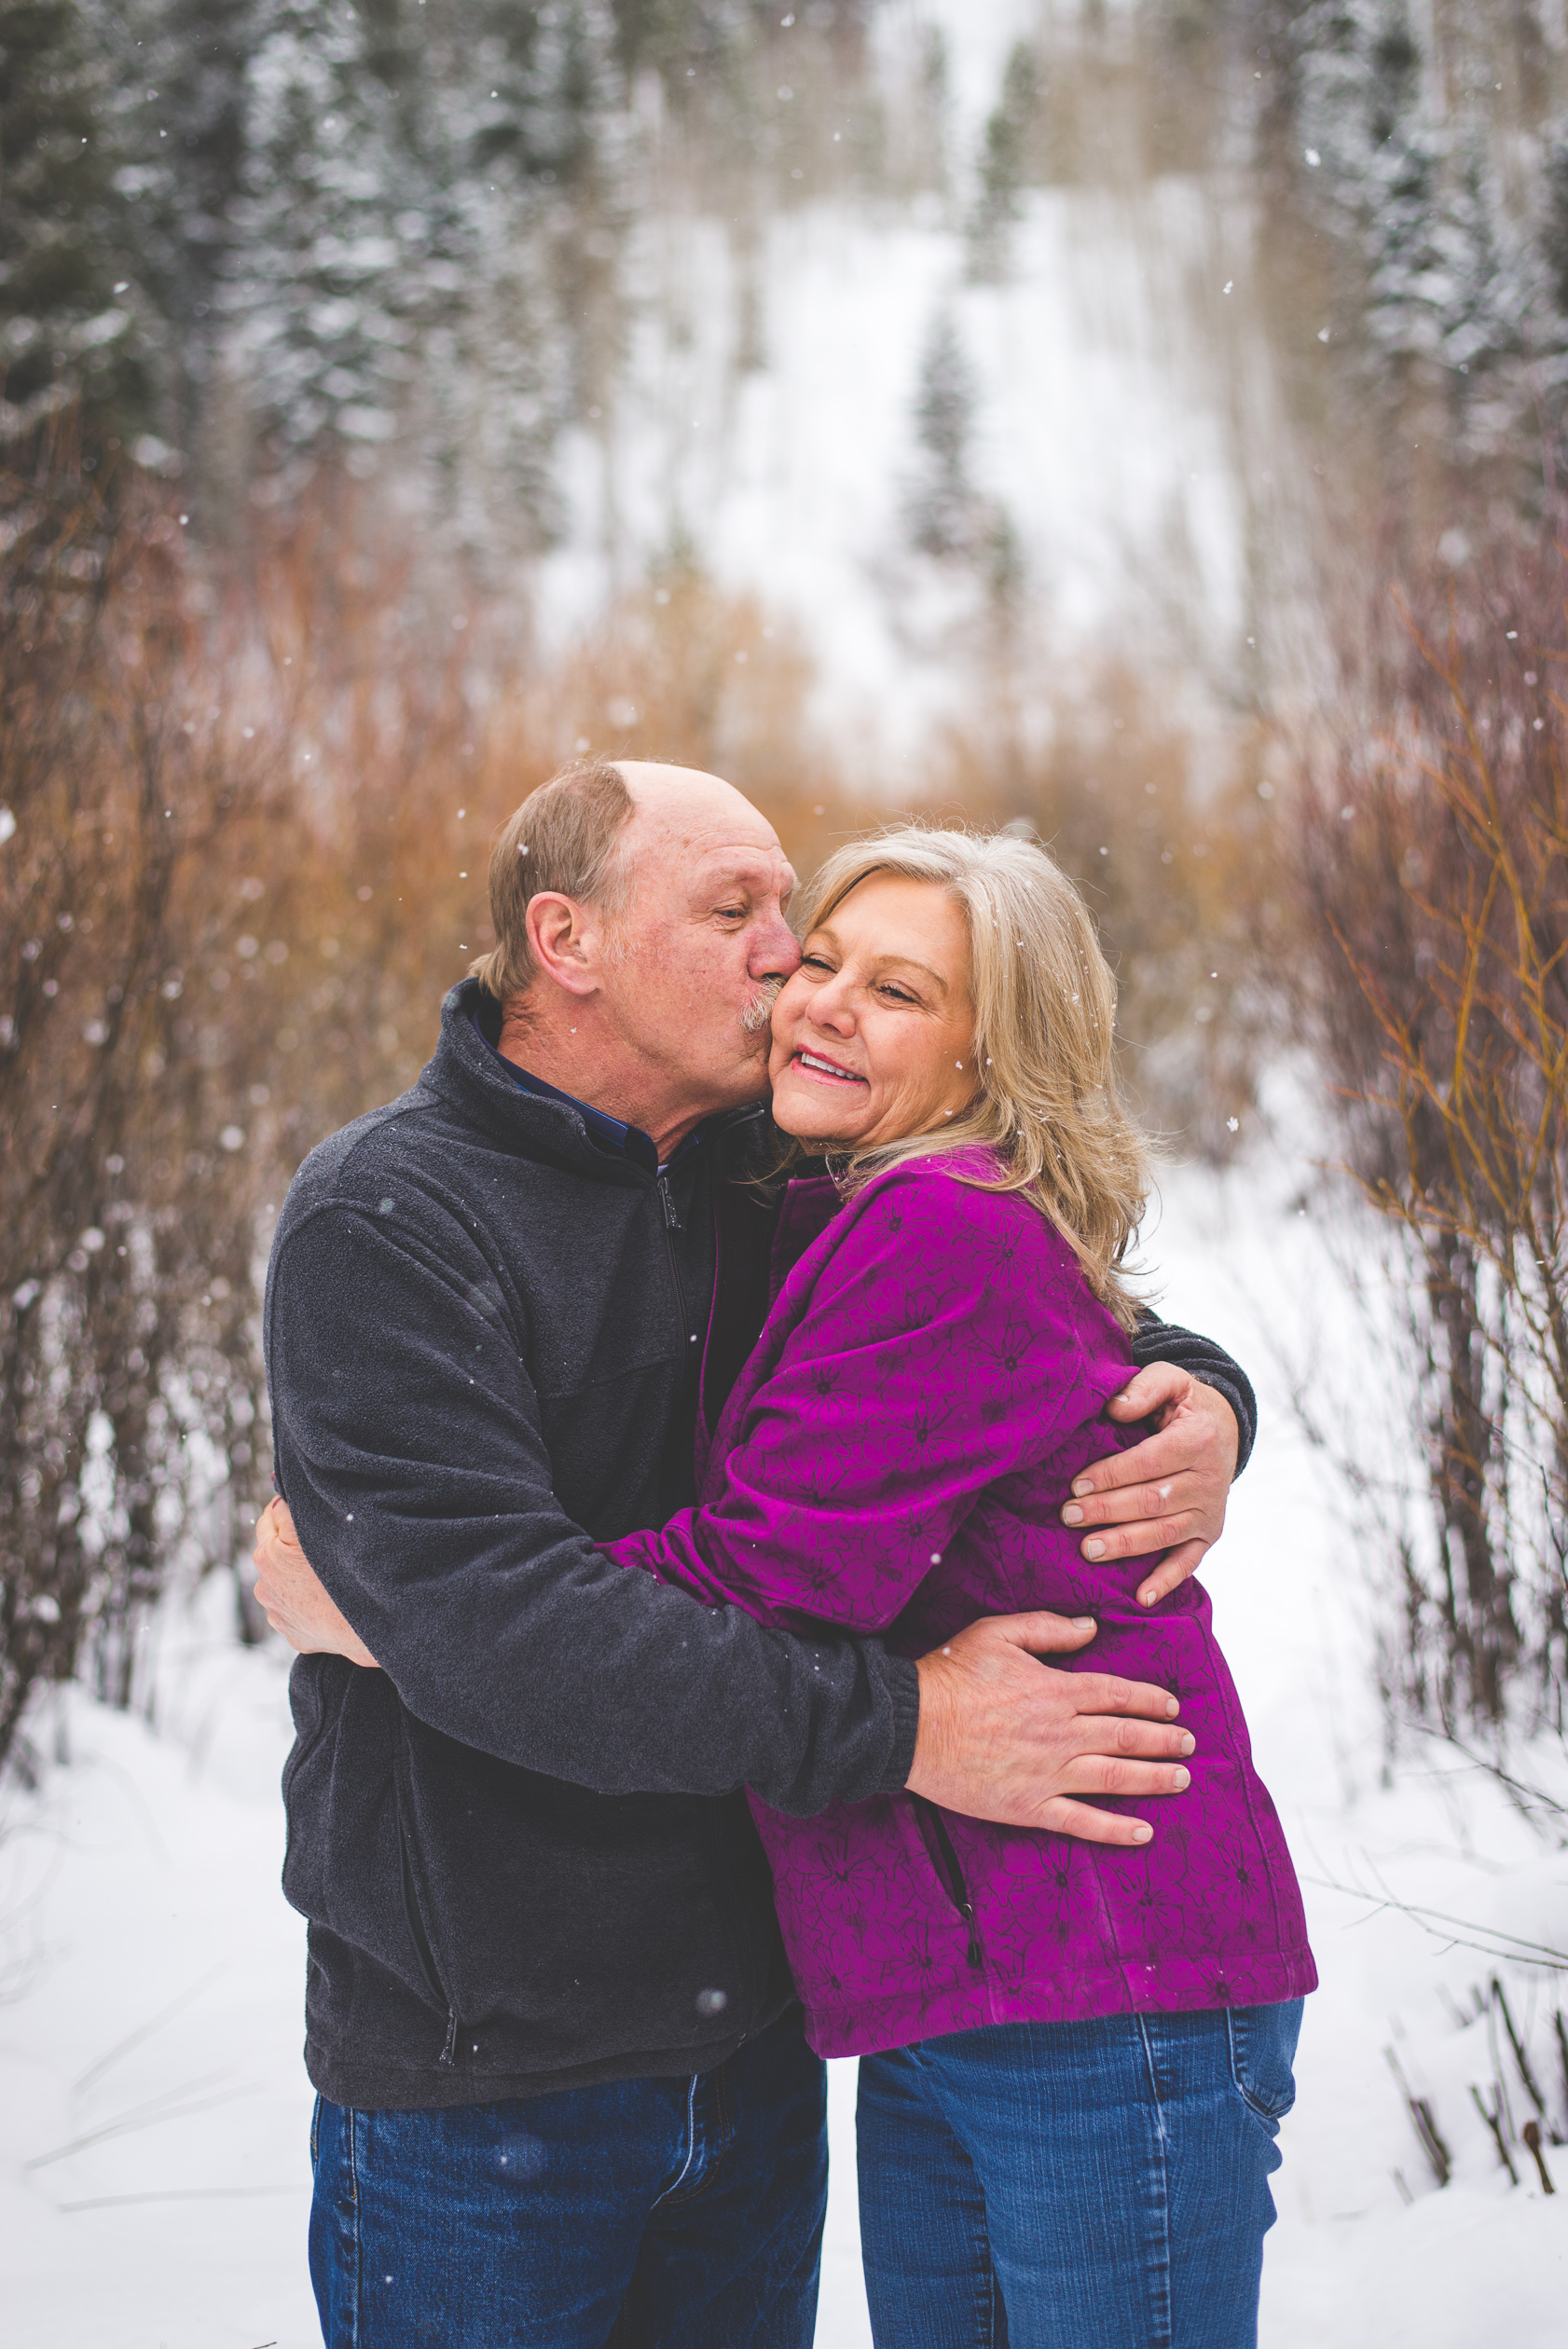 A local winter family photography session in Frisco, Colorado in the falling snow! | Keeping Composure Photography